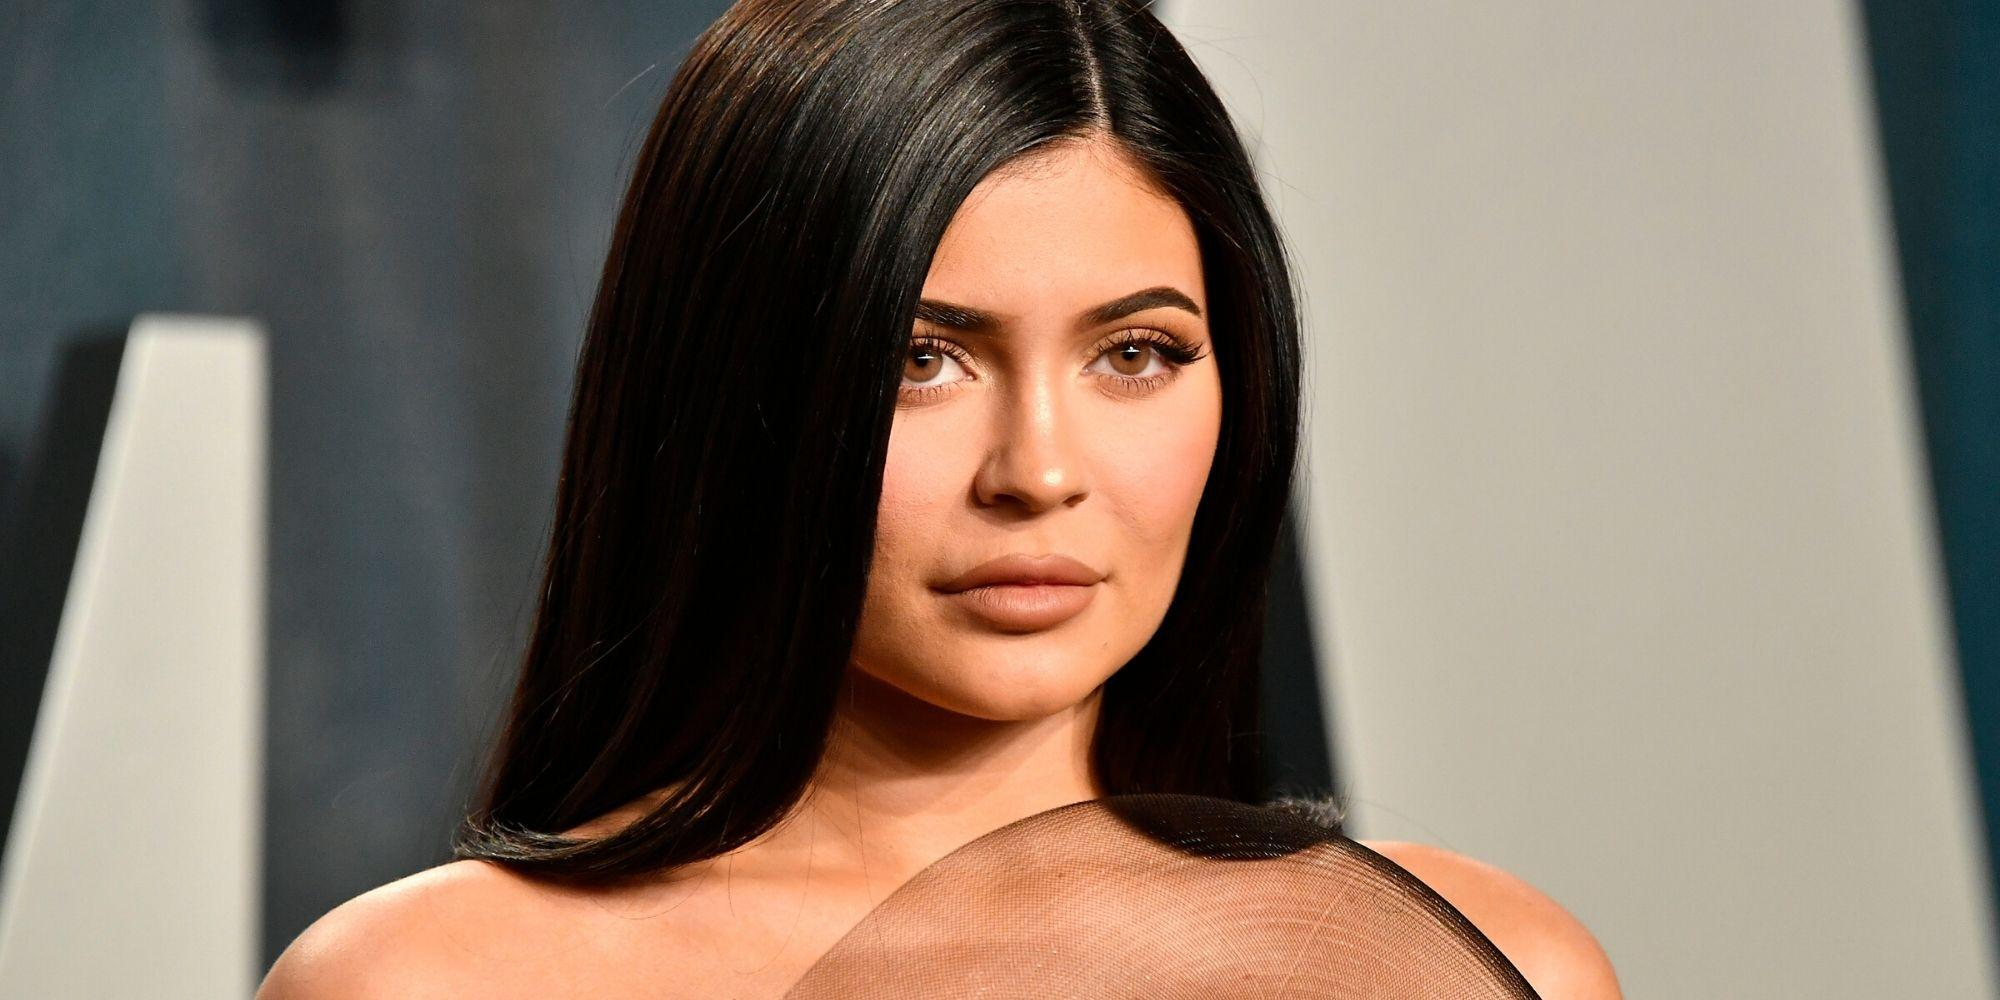 Kylie Jenner stripped of 'billionaire' title after revelations that she 'lied' to inflate her net worth